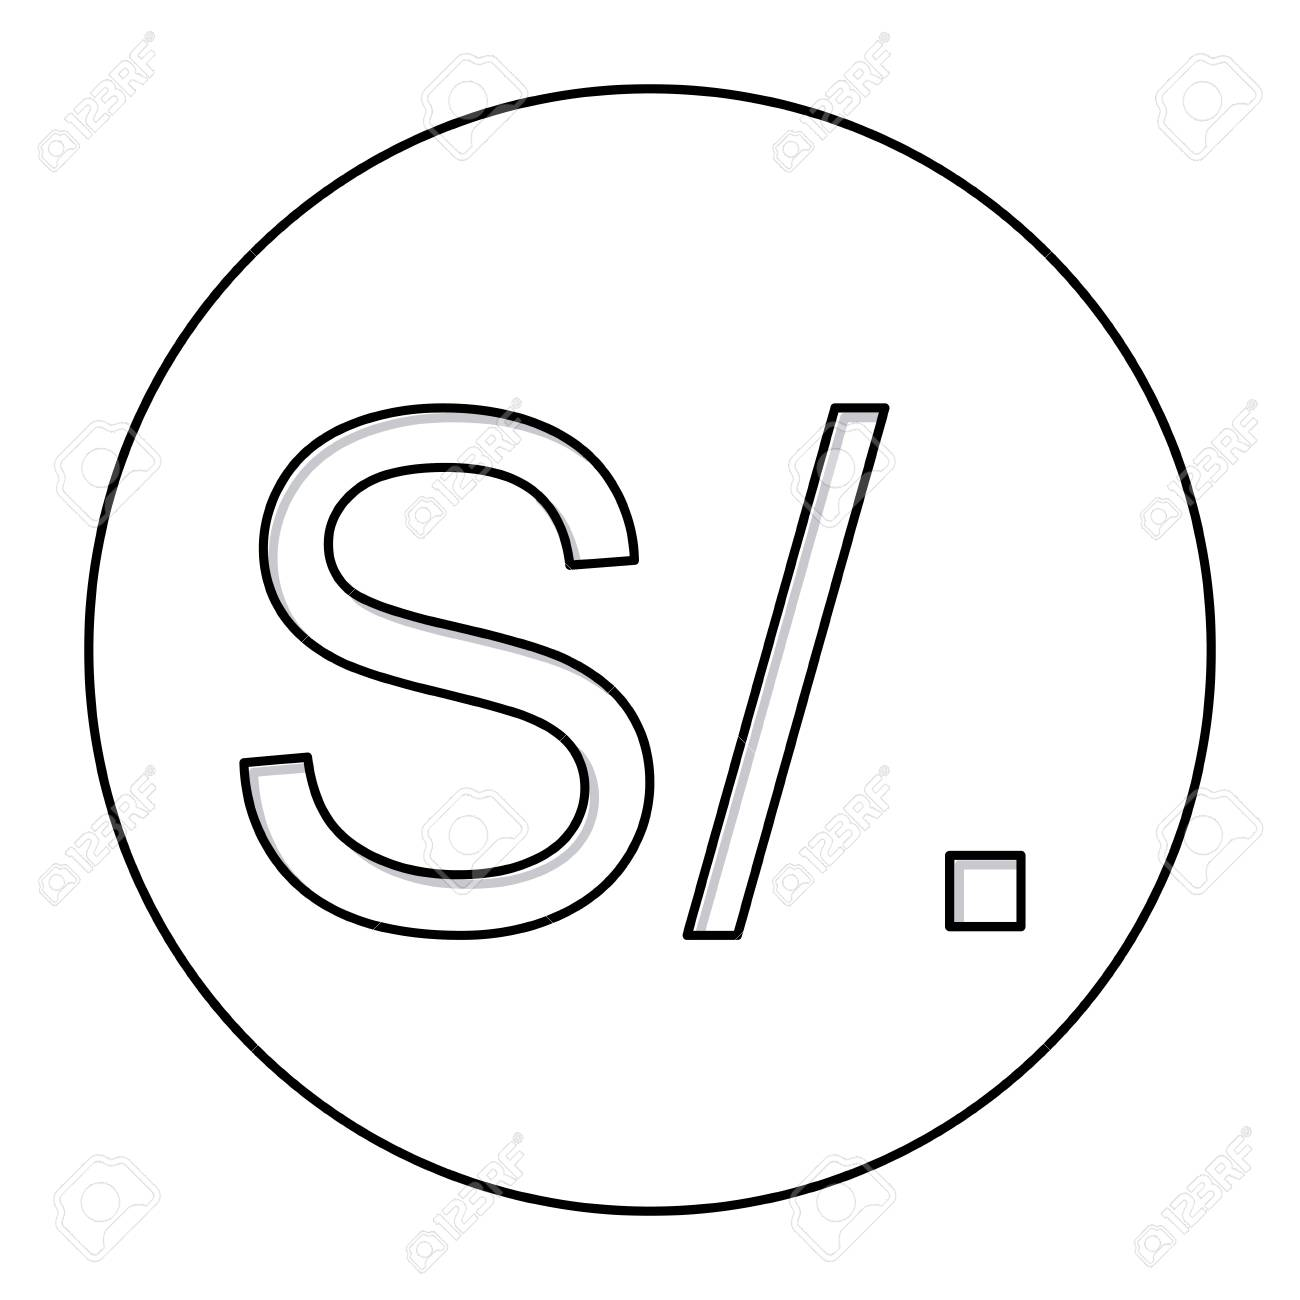 Monochrome contour with currency symbol of sol peru in circle monochrome contour with currency symbol of sol peru in circle vector illustration stock vector 70587346 buycottarizona Images